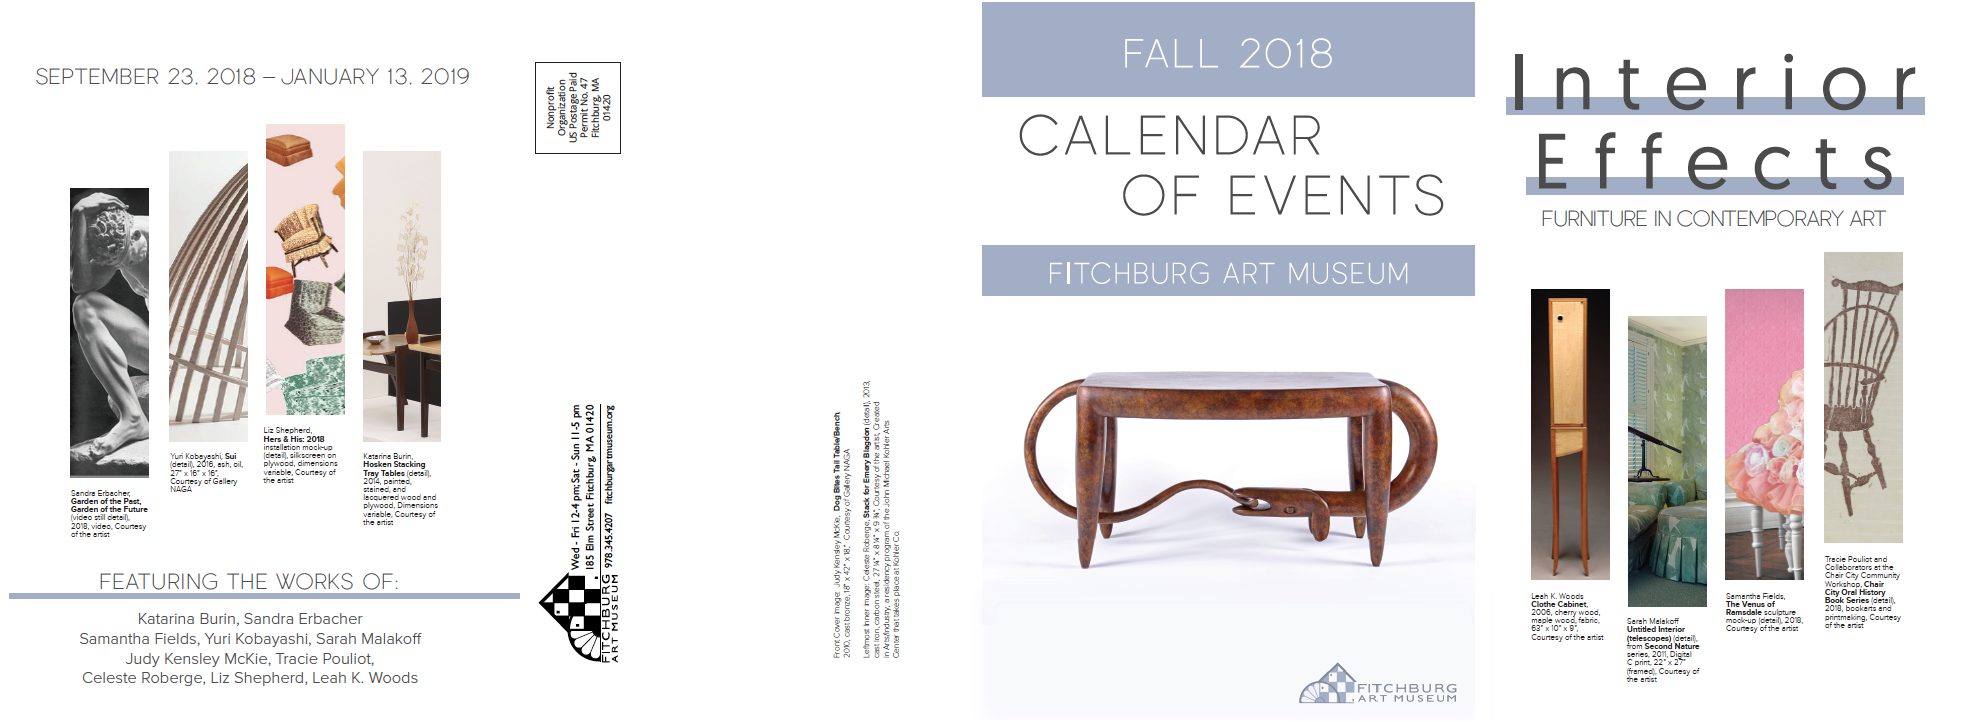 Fall Calendar of Events 2018.png